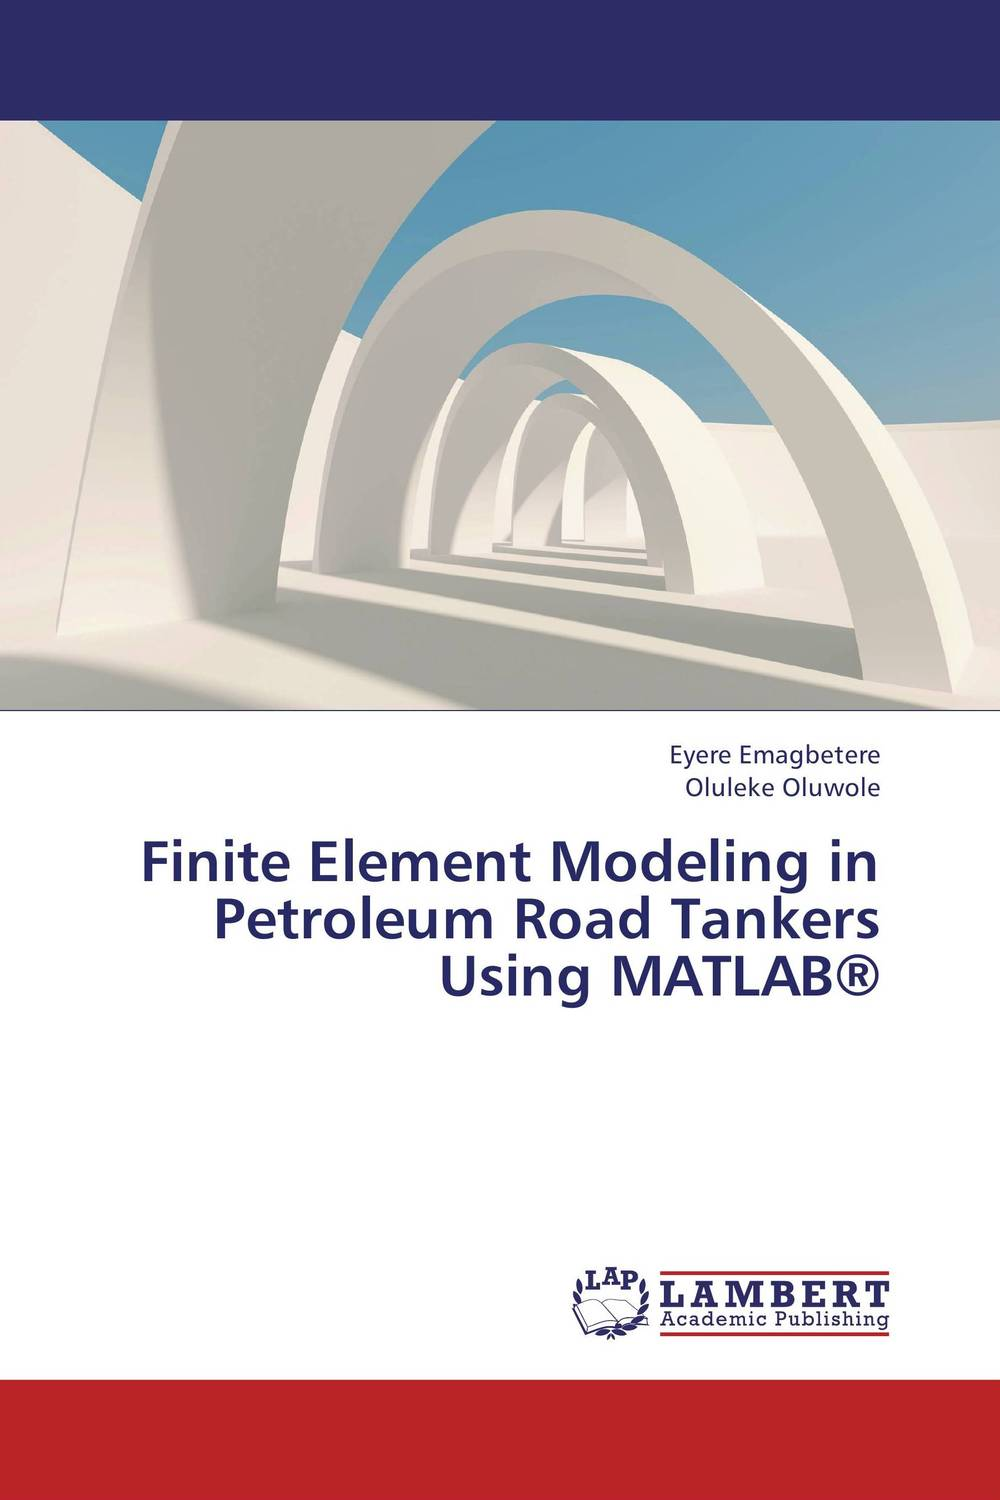 Finite Element Modeling in Petroleum Road Tankers Using MATLAB® simulation of atm using elliptic curve cryptography in matlab